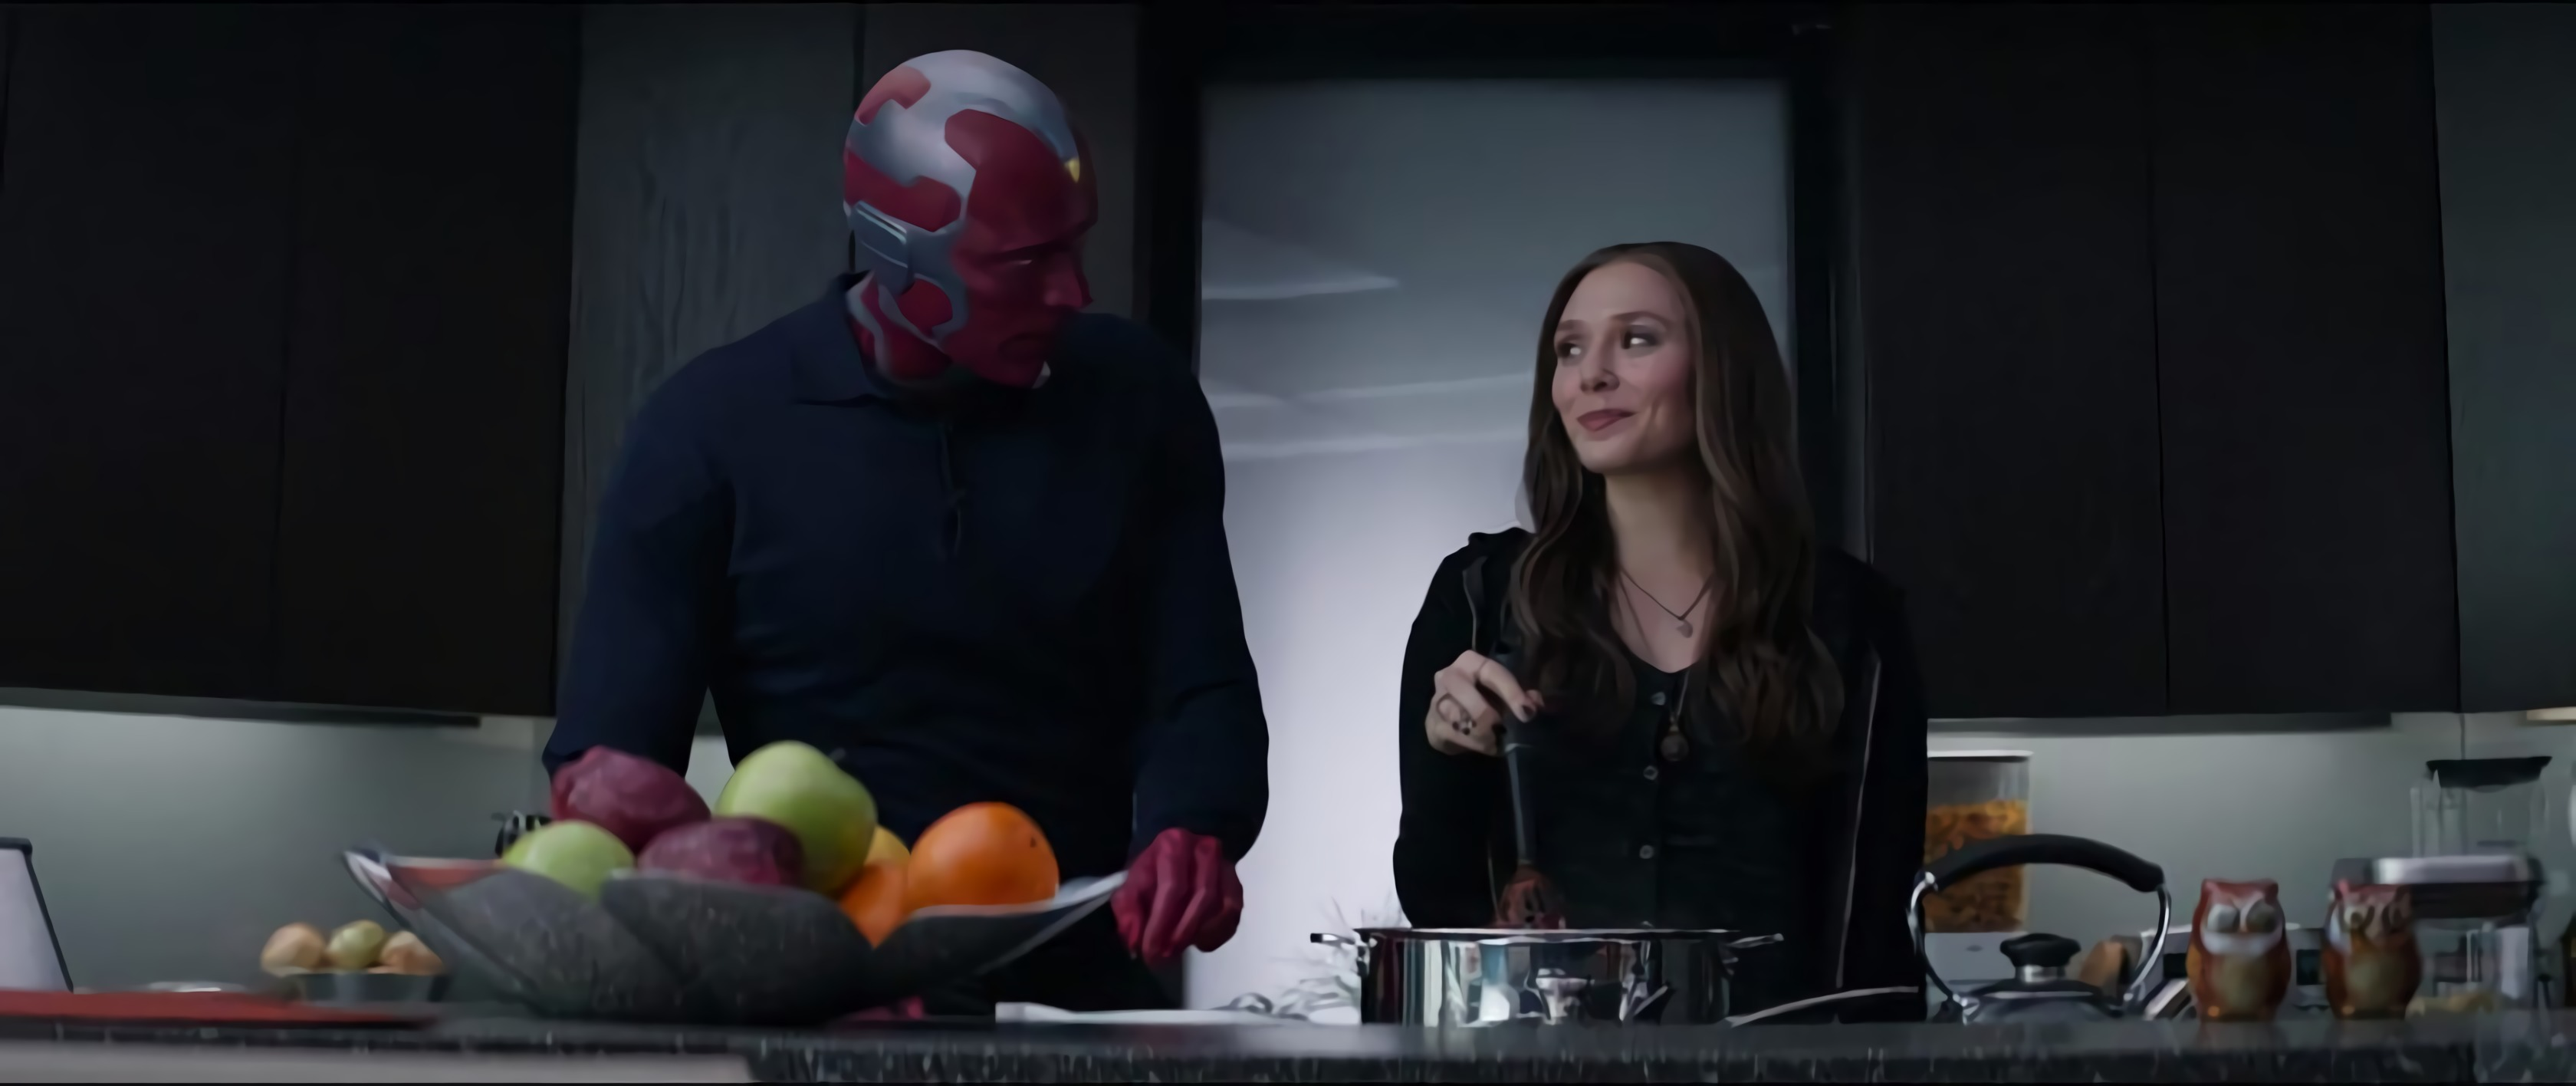 Disney S The Vision And Scarlet Witch Gains Showrunner